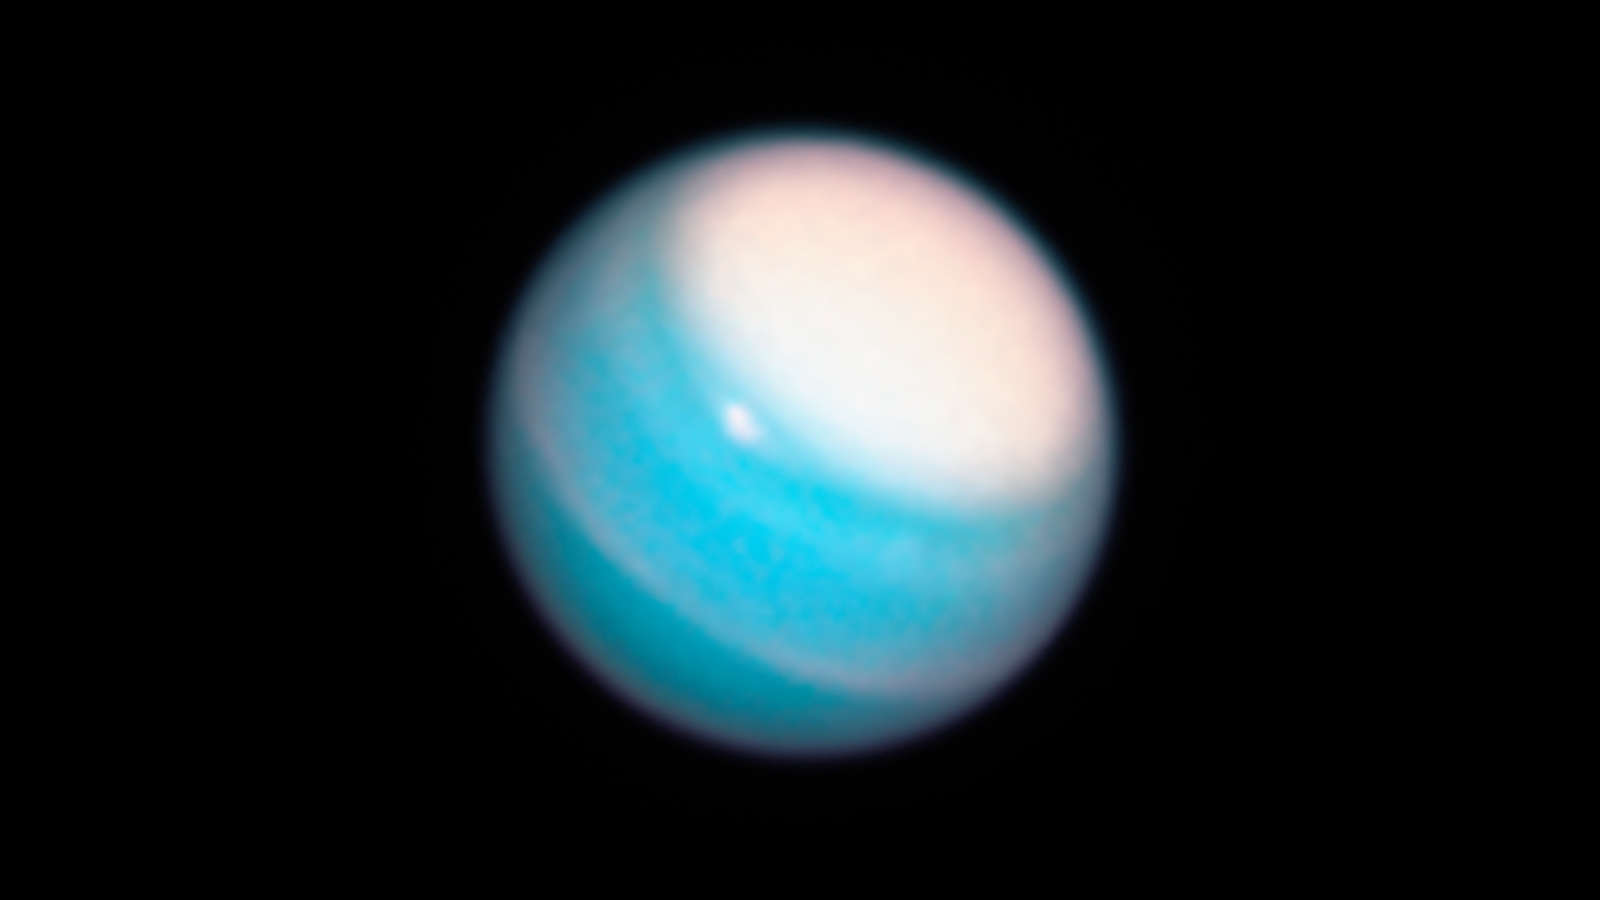 Whoa, Uranus Looks Totally Messed Up Right Now